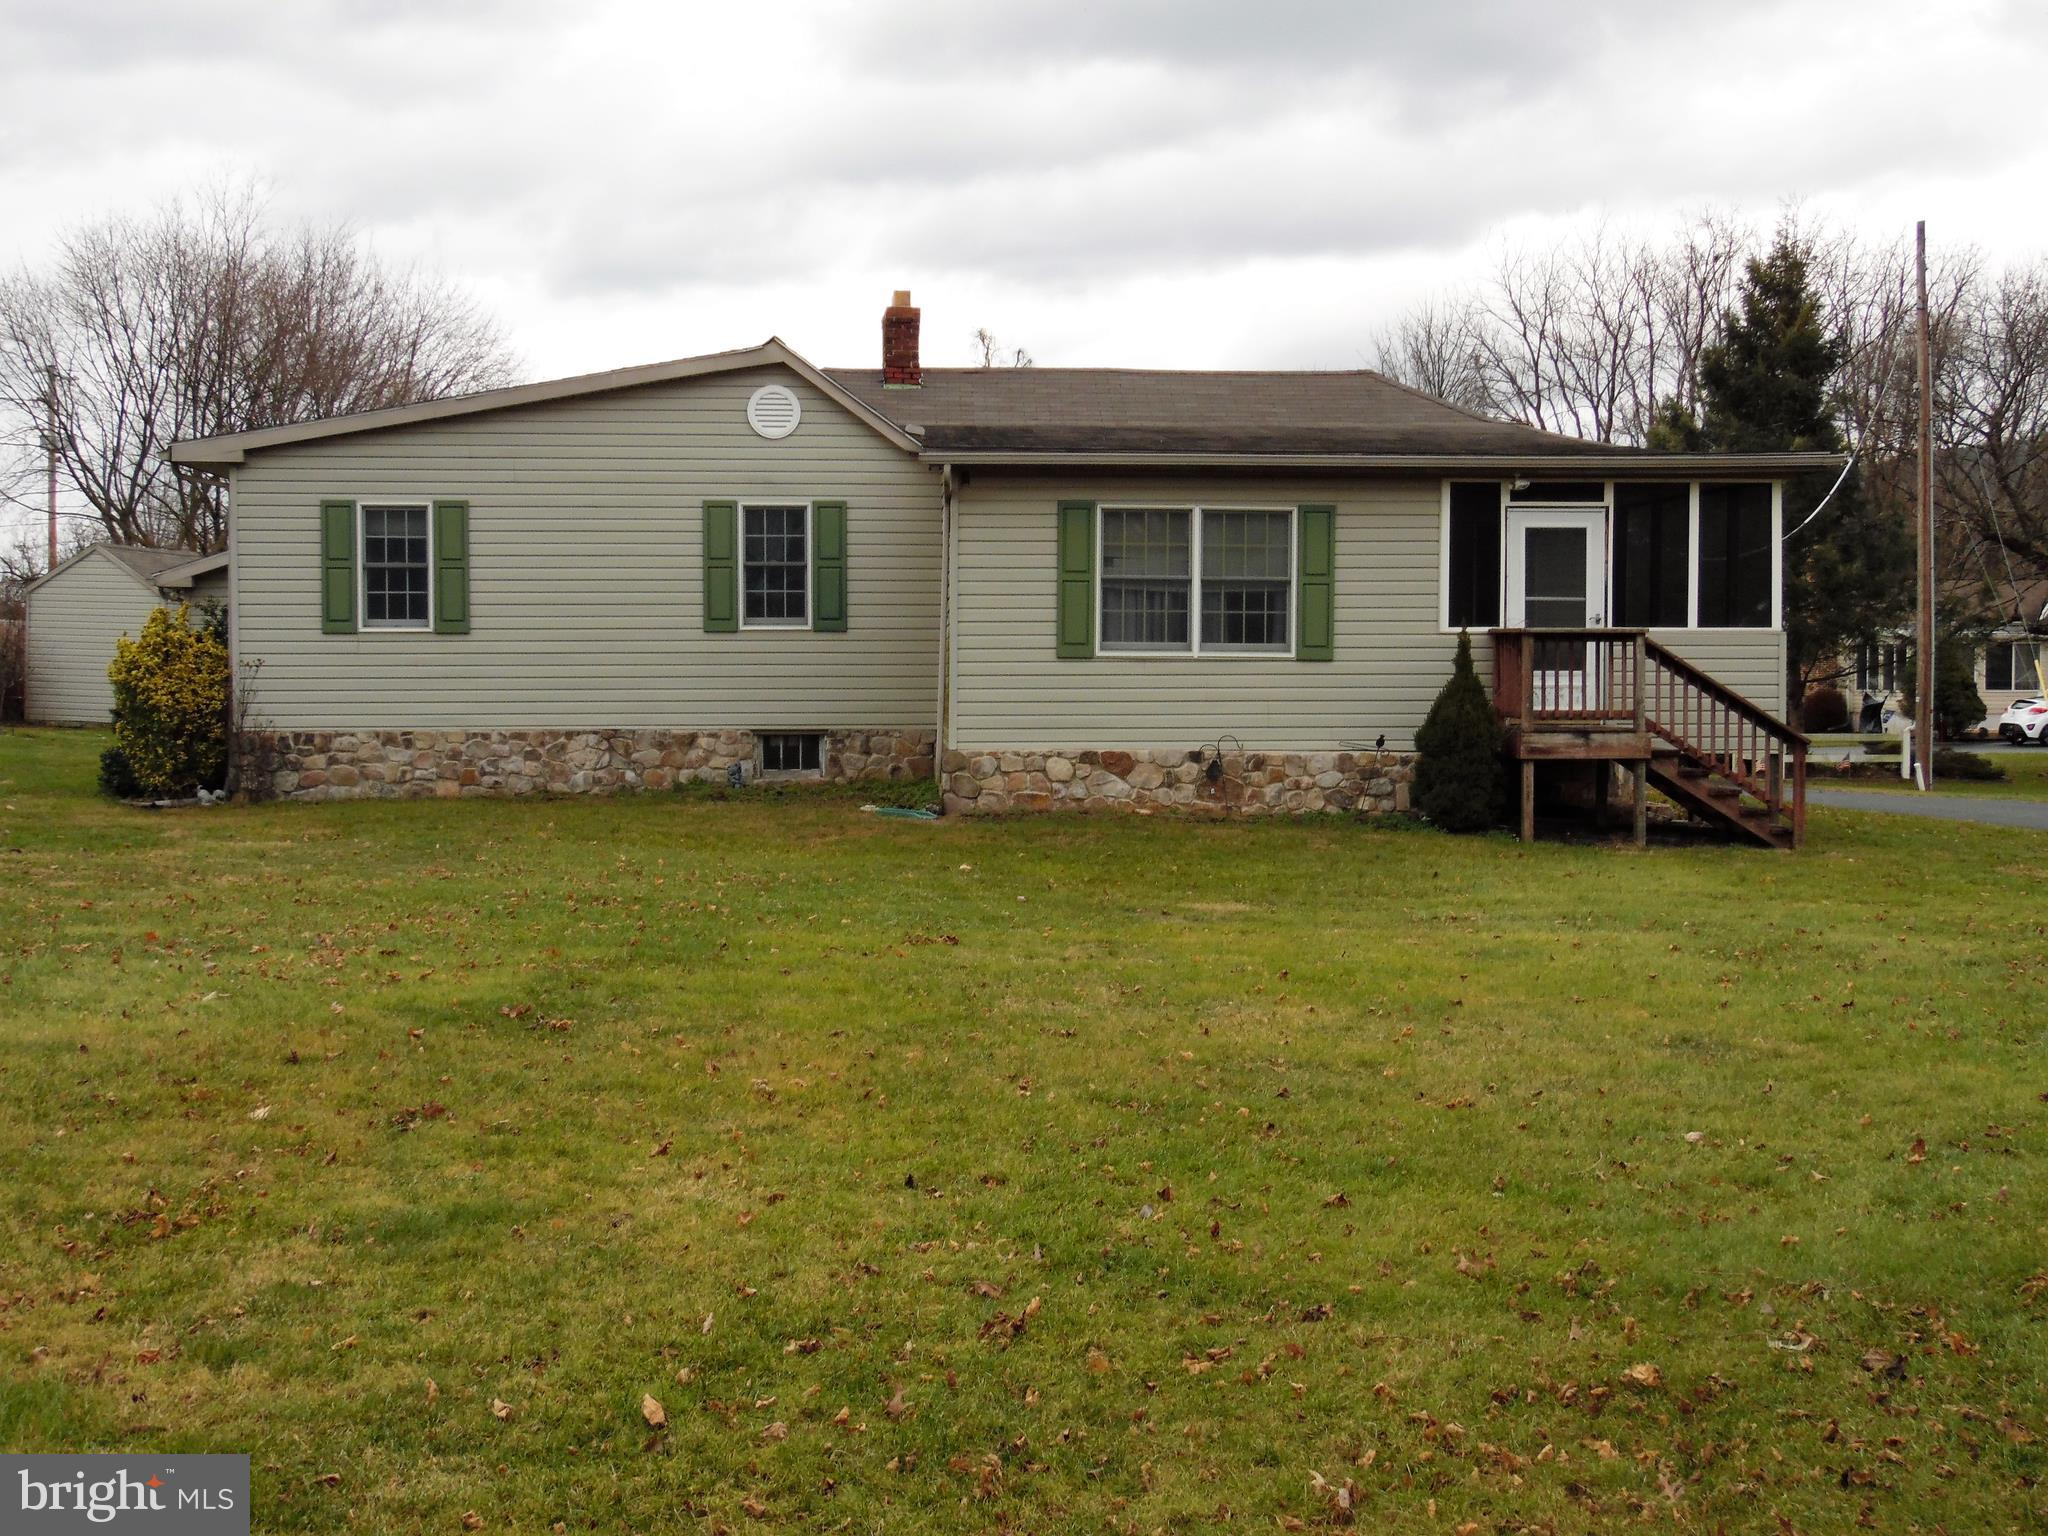 871-873 PETERS MOUNTAIN ROAD, DAUPHIN, PA 17018